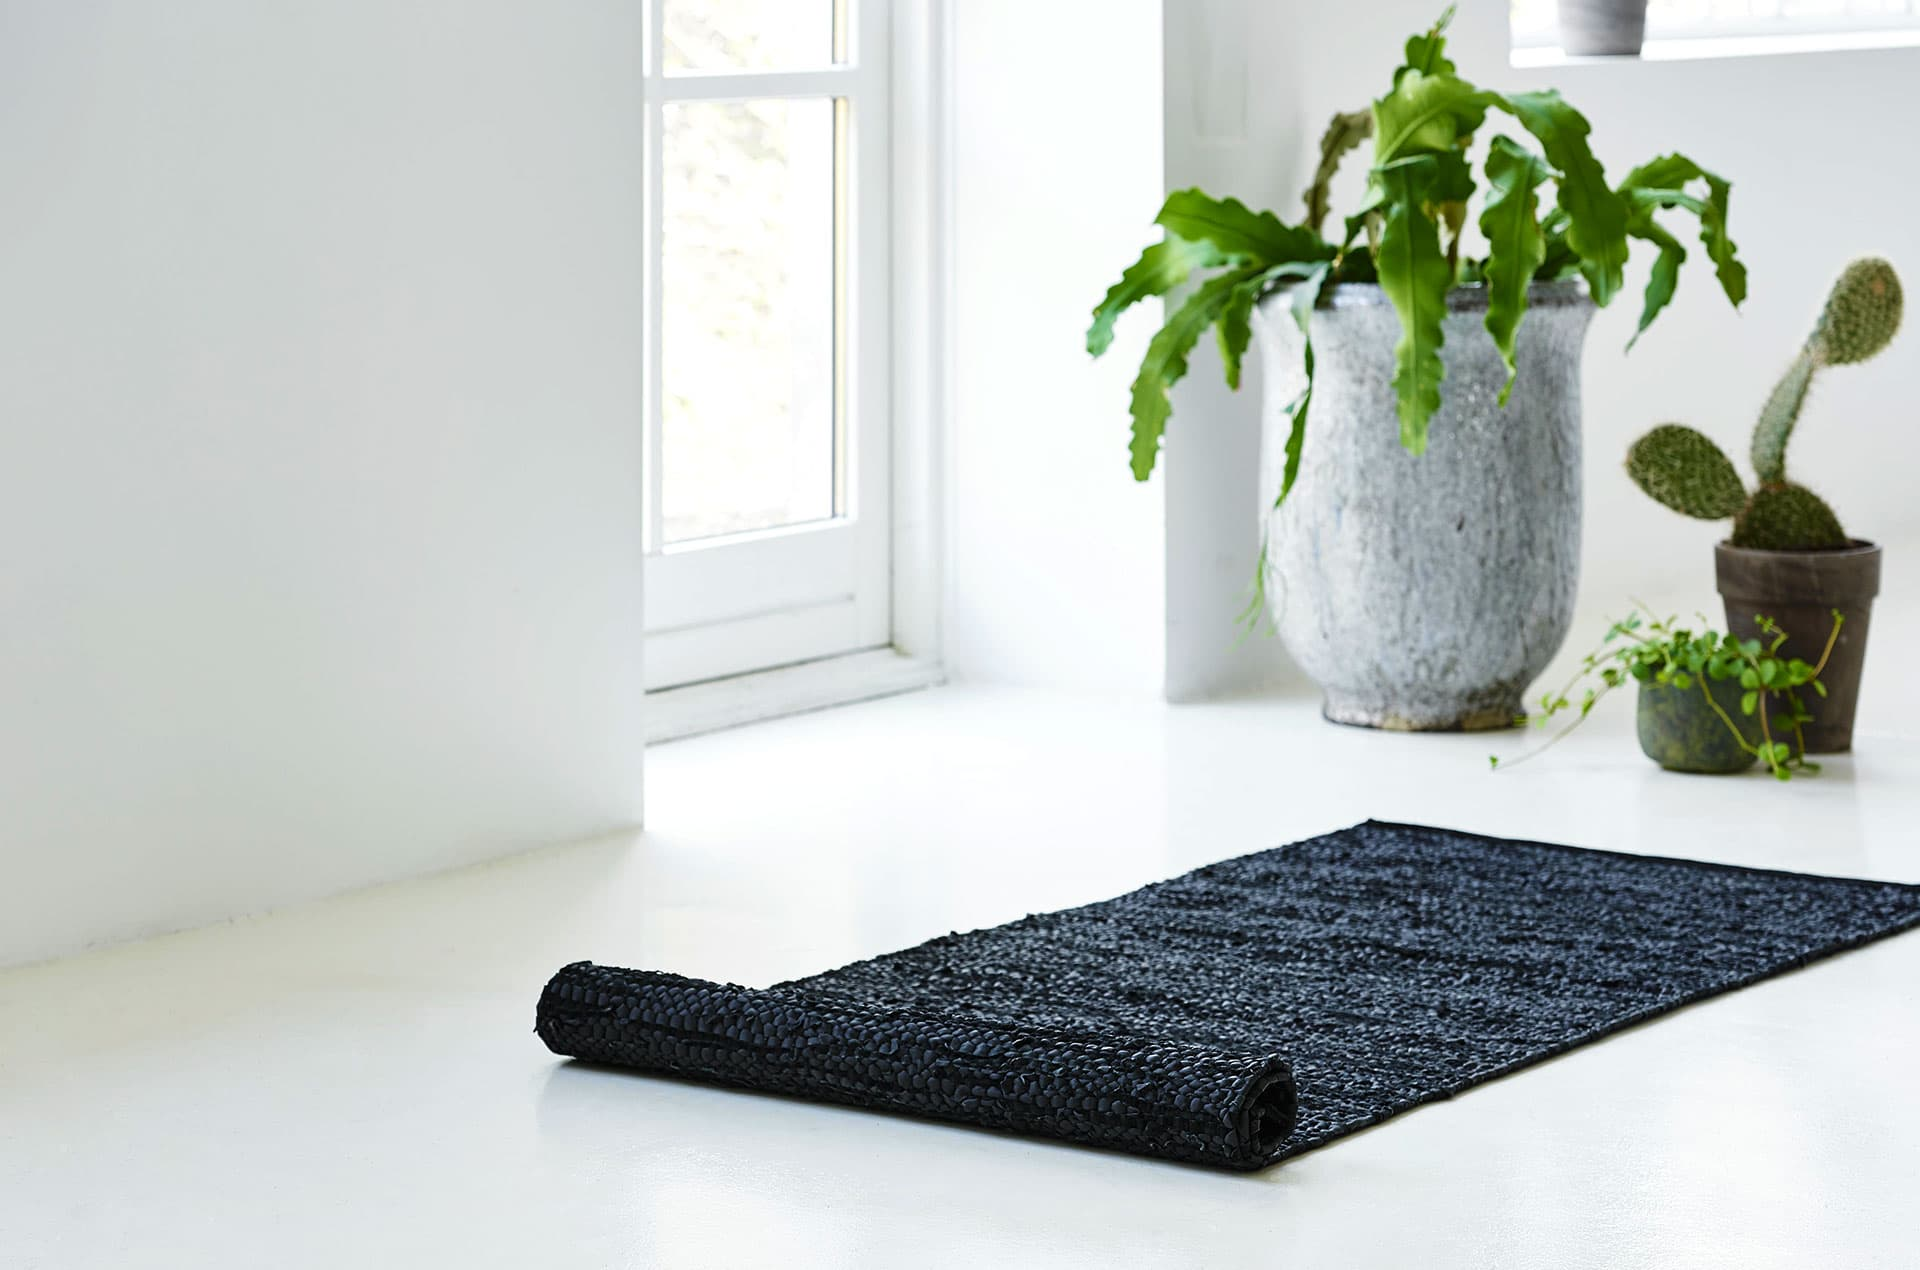 Tapis noir 100% cuir recyclé by Rugsolid-PARIDEO design contemporain durable